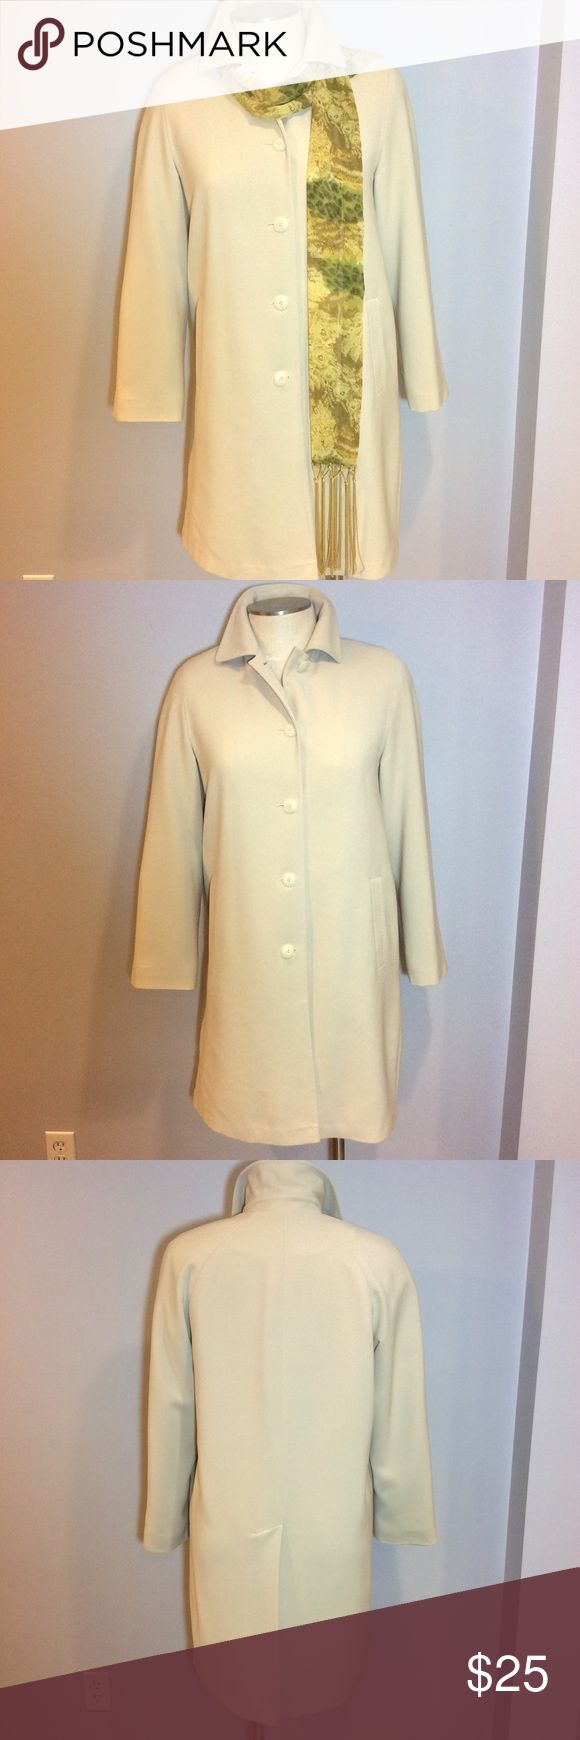 """Gallery Coat Gallery Coat in Cream. Medium weight fabric.  100% Polyester. Washable.  Perfect trench coat alternative.  The tag says Medium but fits more like size 14/Large. Measures 22"""" flat under arms; 38"""" long; sleeves 25"""" long. Coat is in good condition and shows minor signs of wear. See pics.  There are two small stains/spots that I see.  One stain you cannot see when Coat is buttoned.  The other spot is very small. See pics.  ** Scarf can be purchased separately. Gallery Jackets…"""